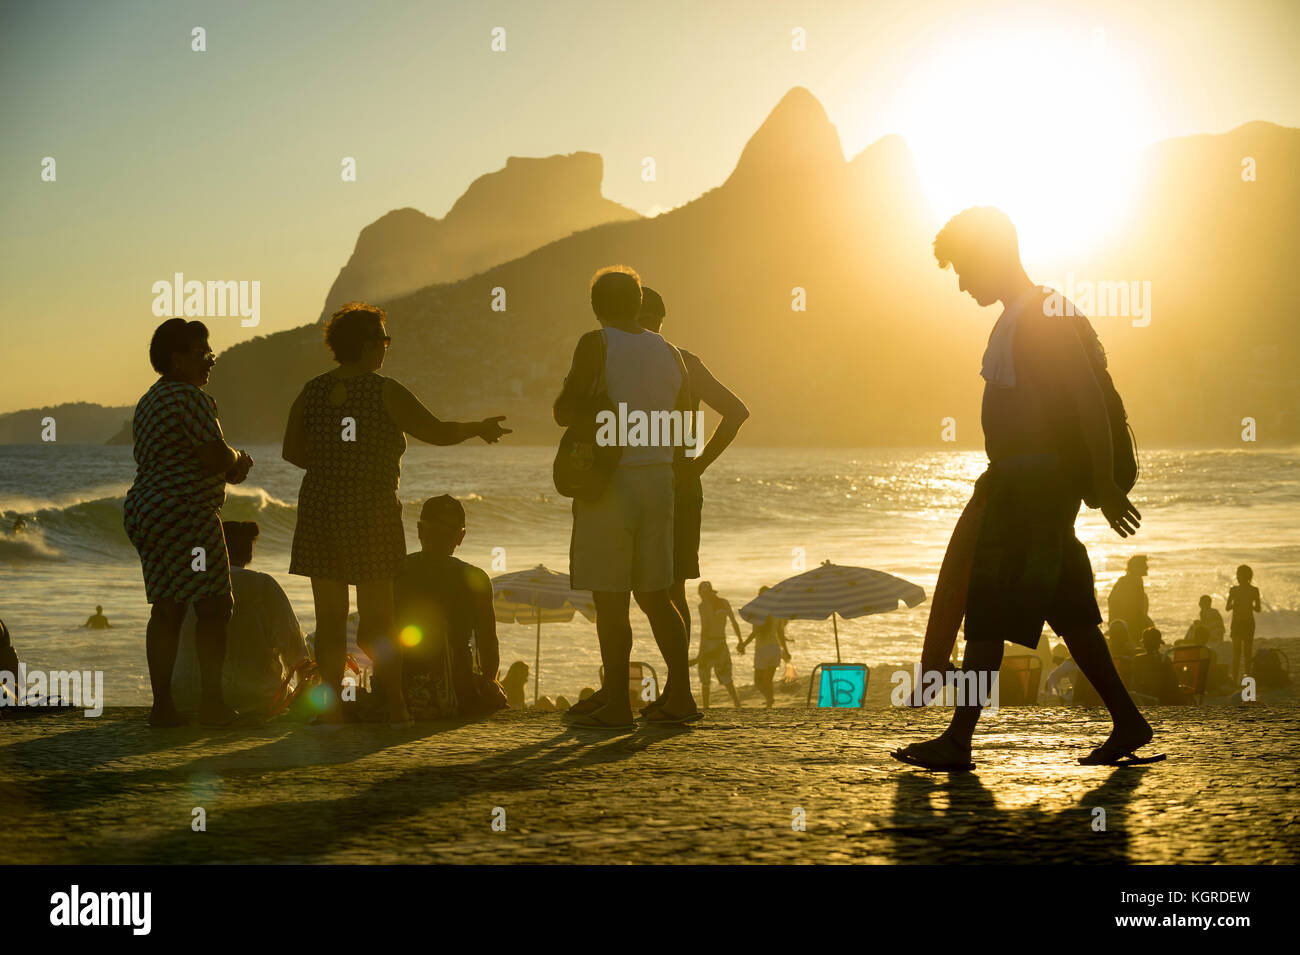 RIO DE JANEIRO - MARCH 20, 2017: People gather to watch the sunset at Arpoador, a popular summertime activity for - Stock Image